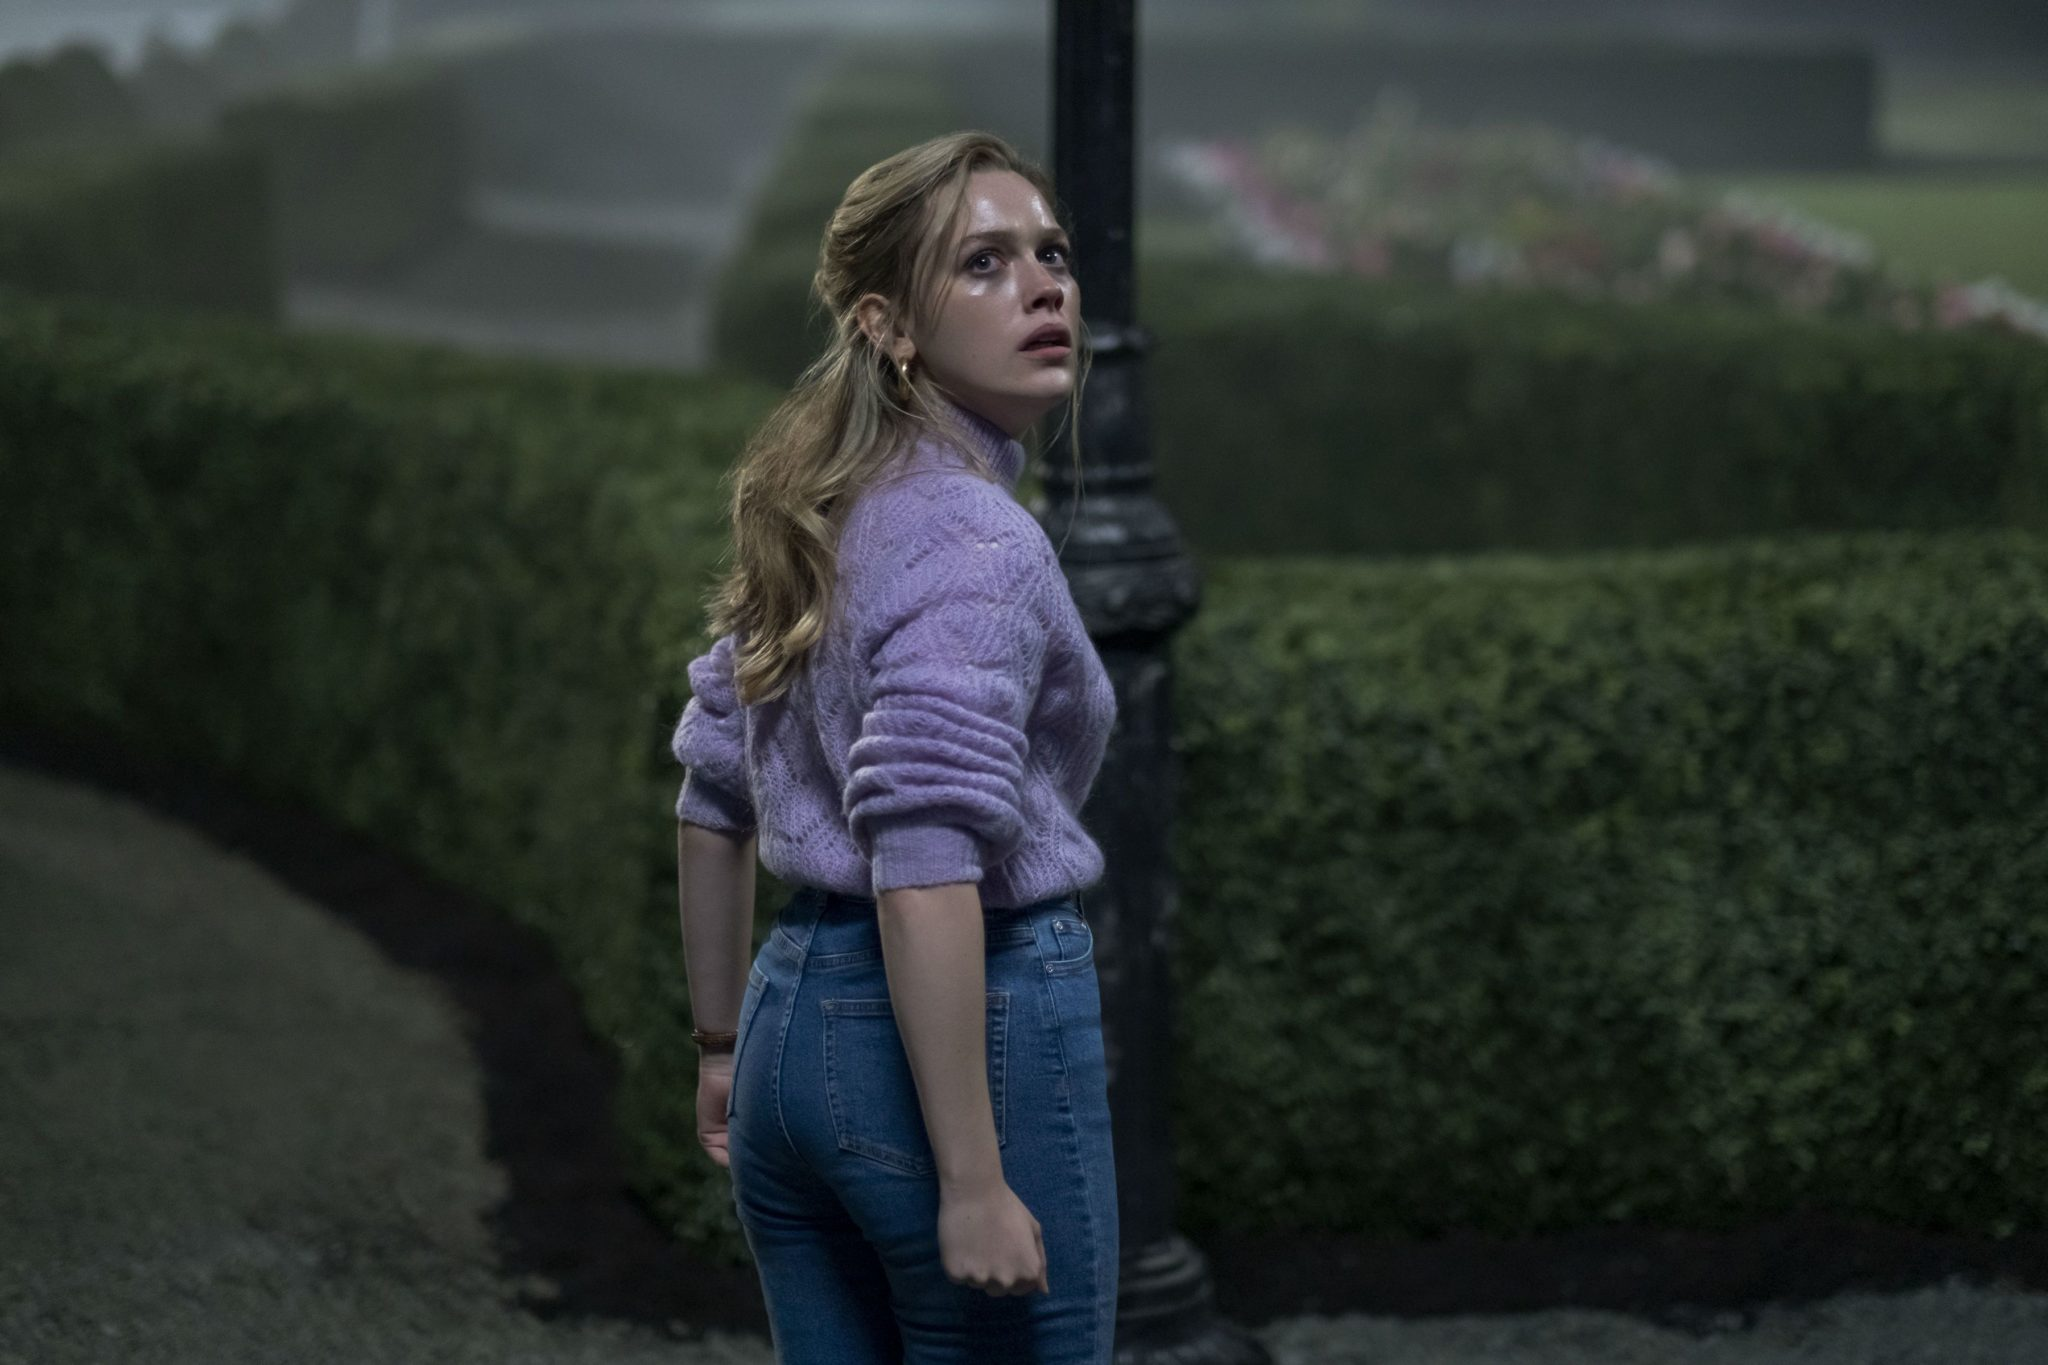 Dani standing in front of some bushes in the Haunting of Bly Manor